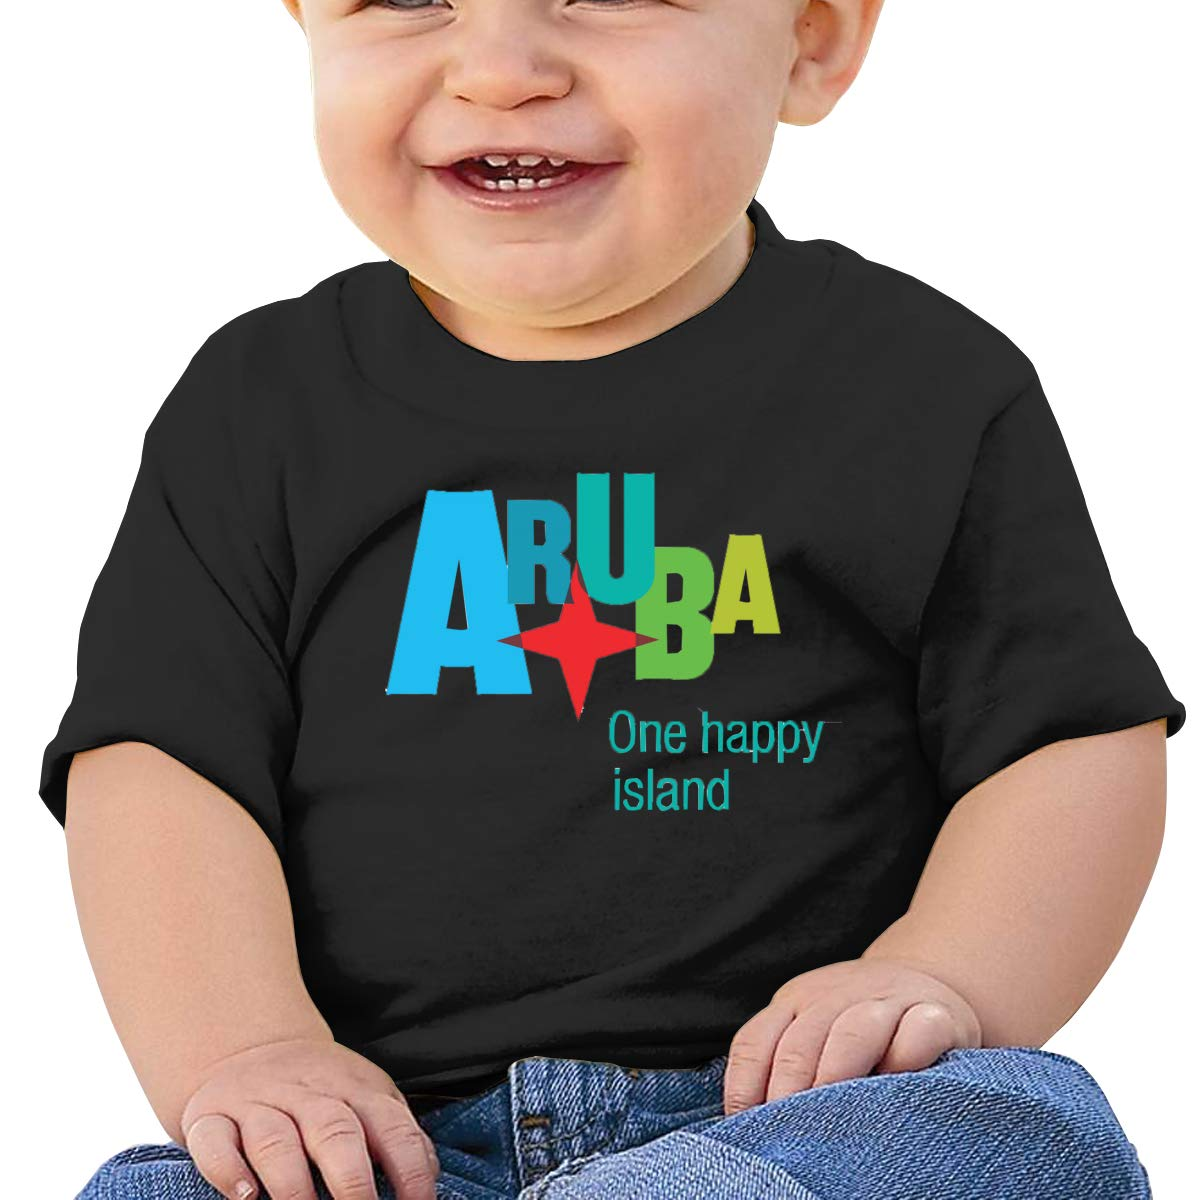 Aruba-Logo Baby T-Shirt Little Baby Cotton T Shirts Soft Graphic Tees for 6M-2T Baby